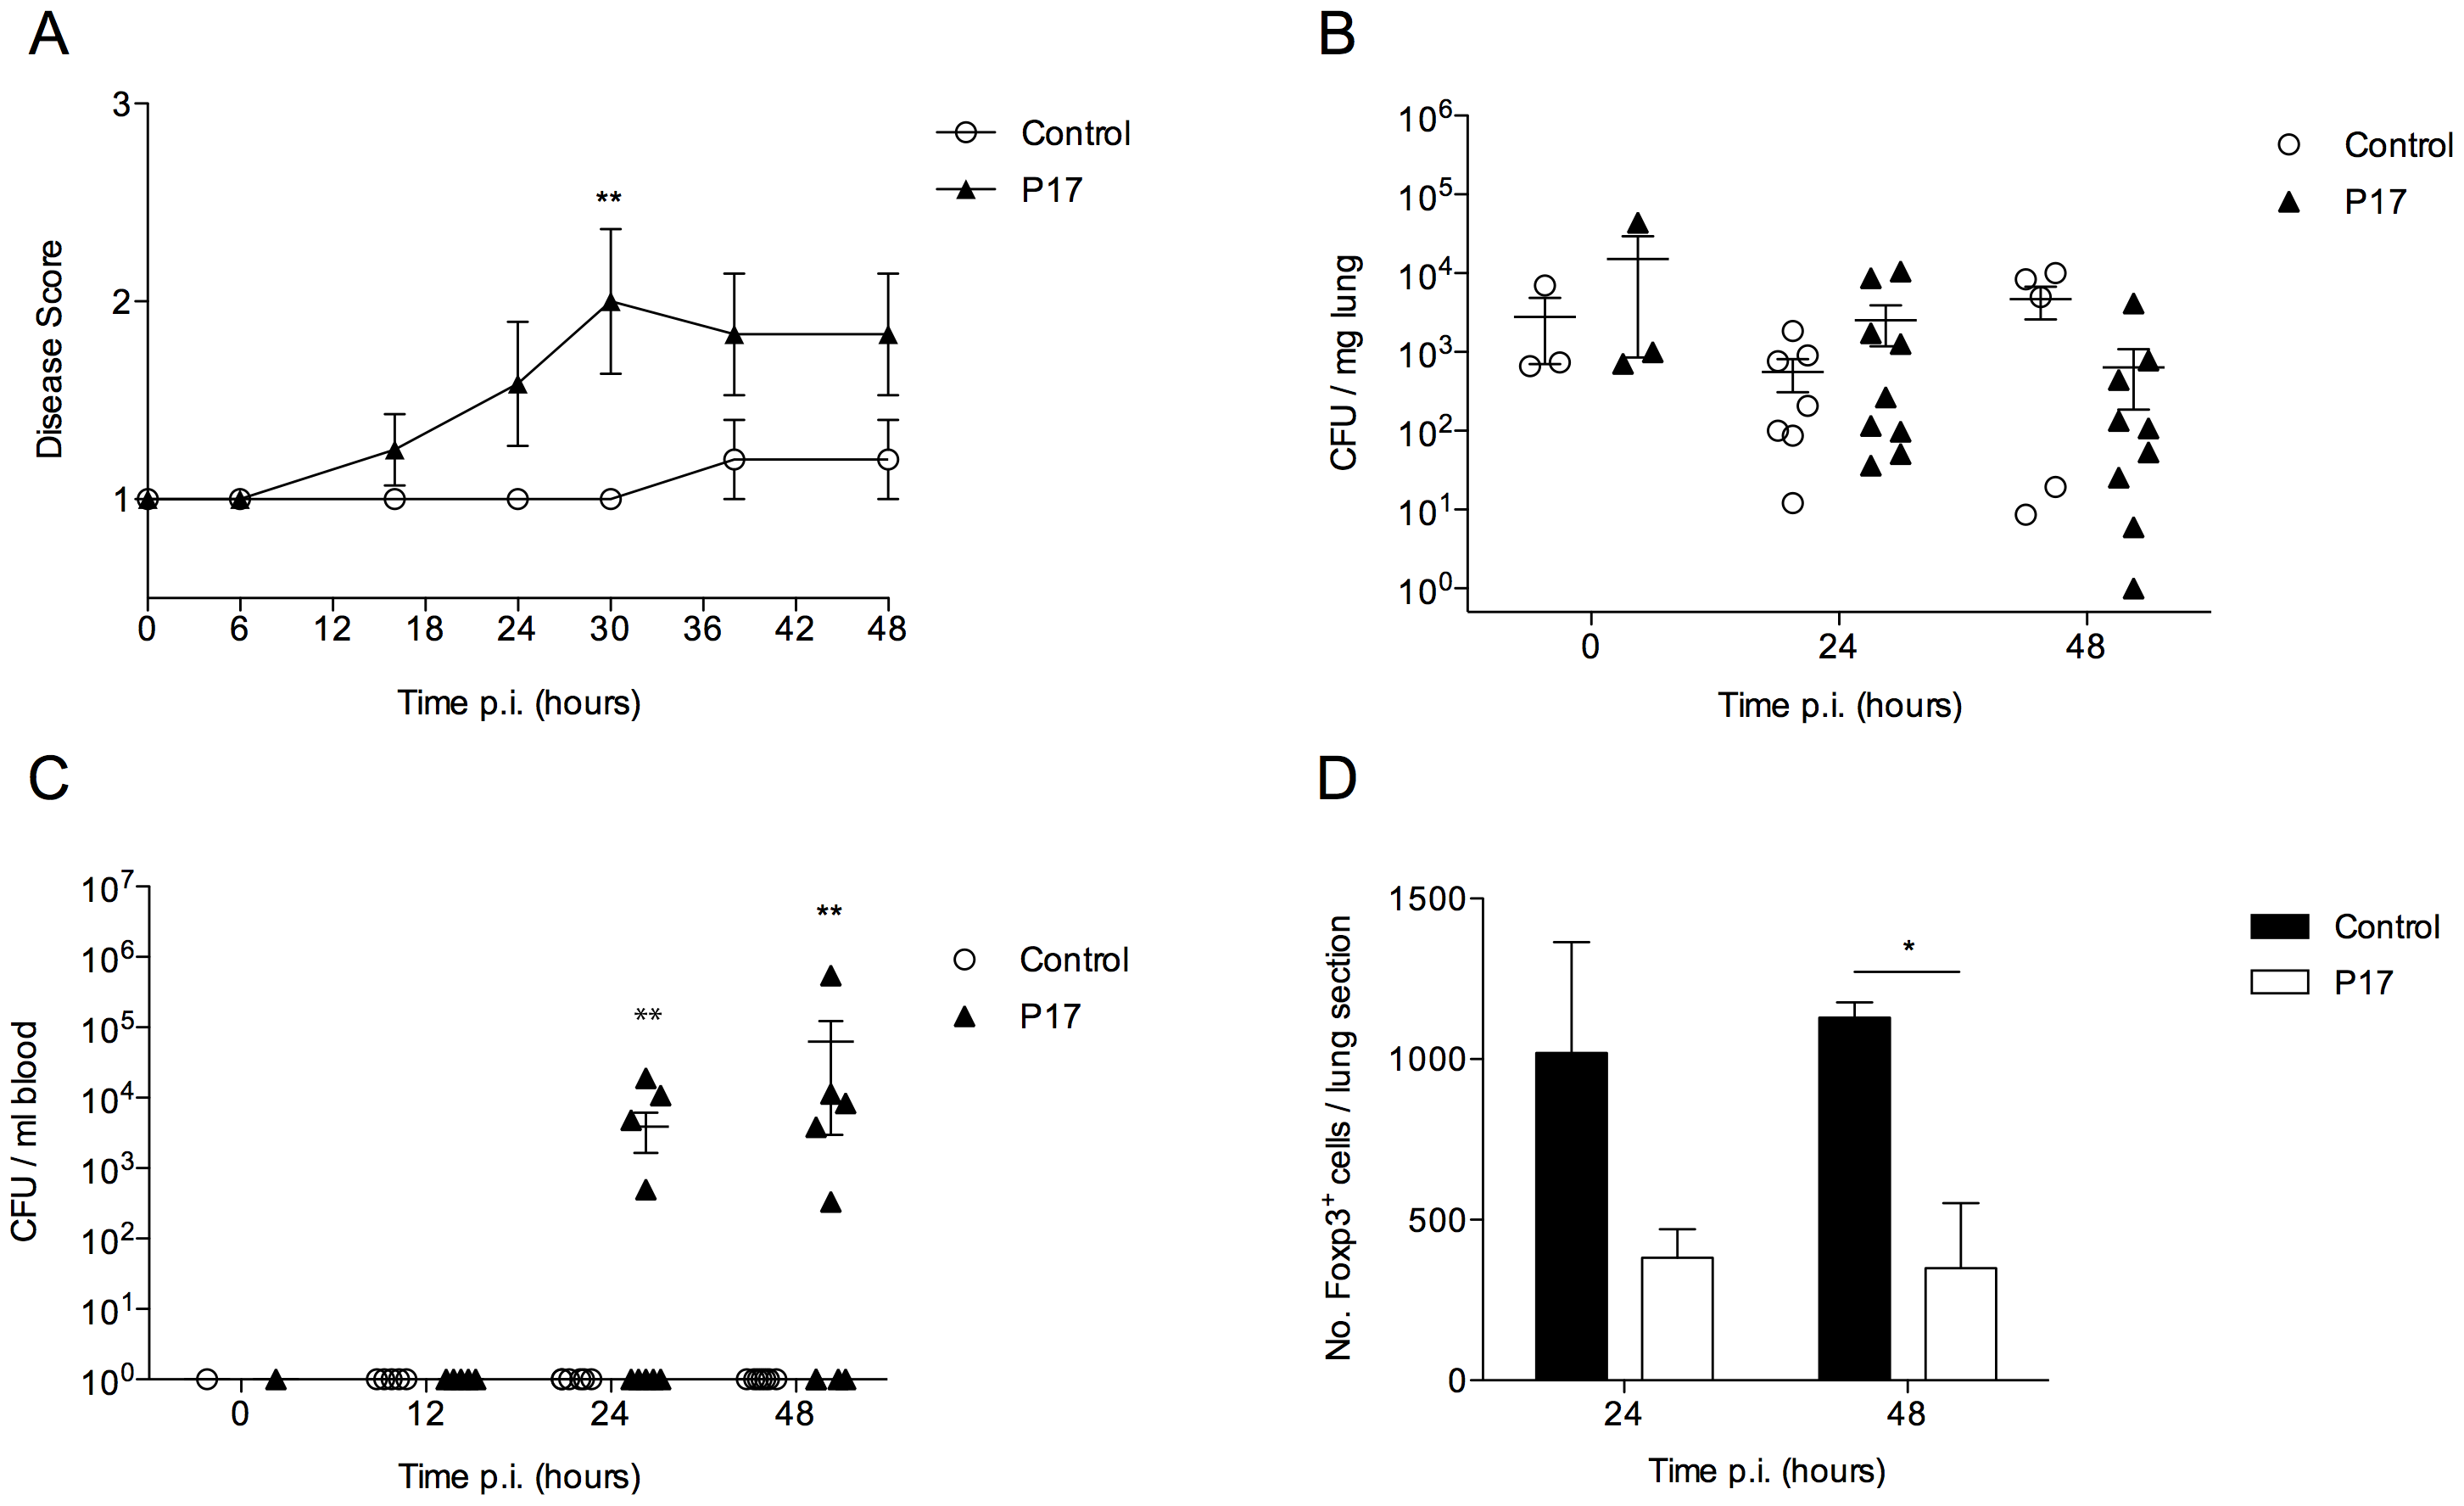 Inhibition of TGF-β activity impairs BALB/c resistance to pneumococcal infection.